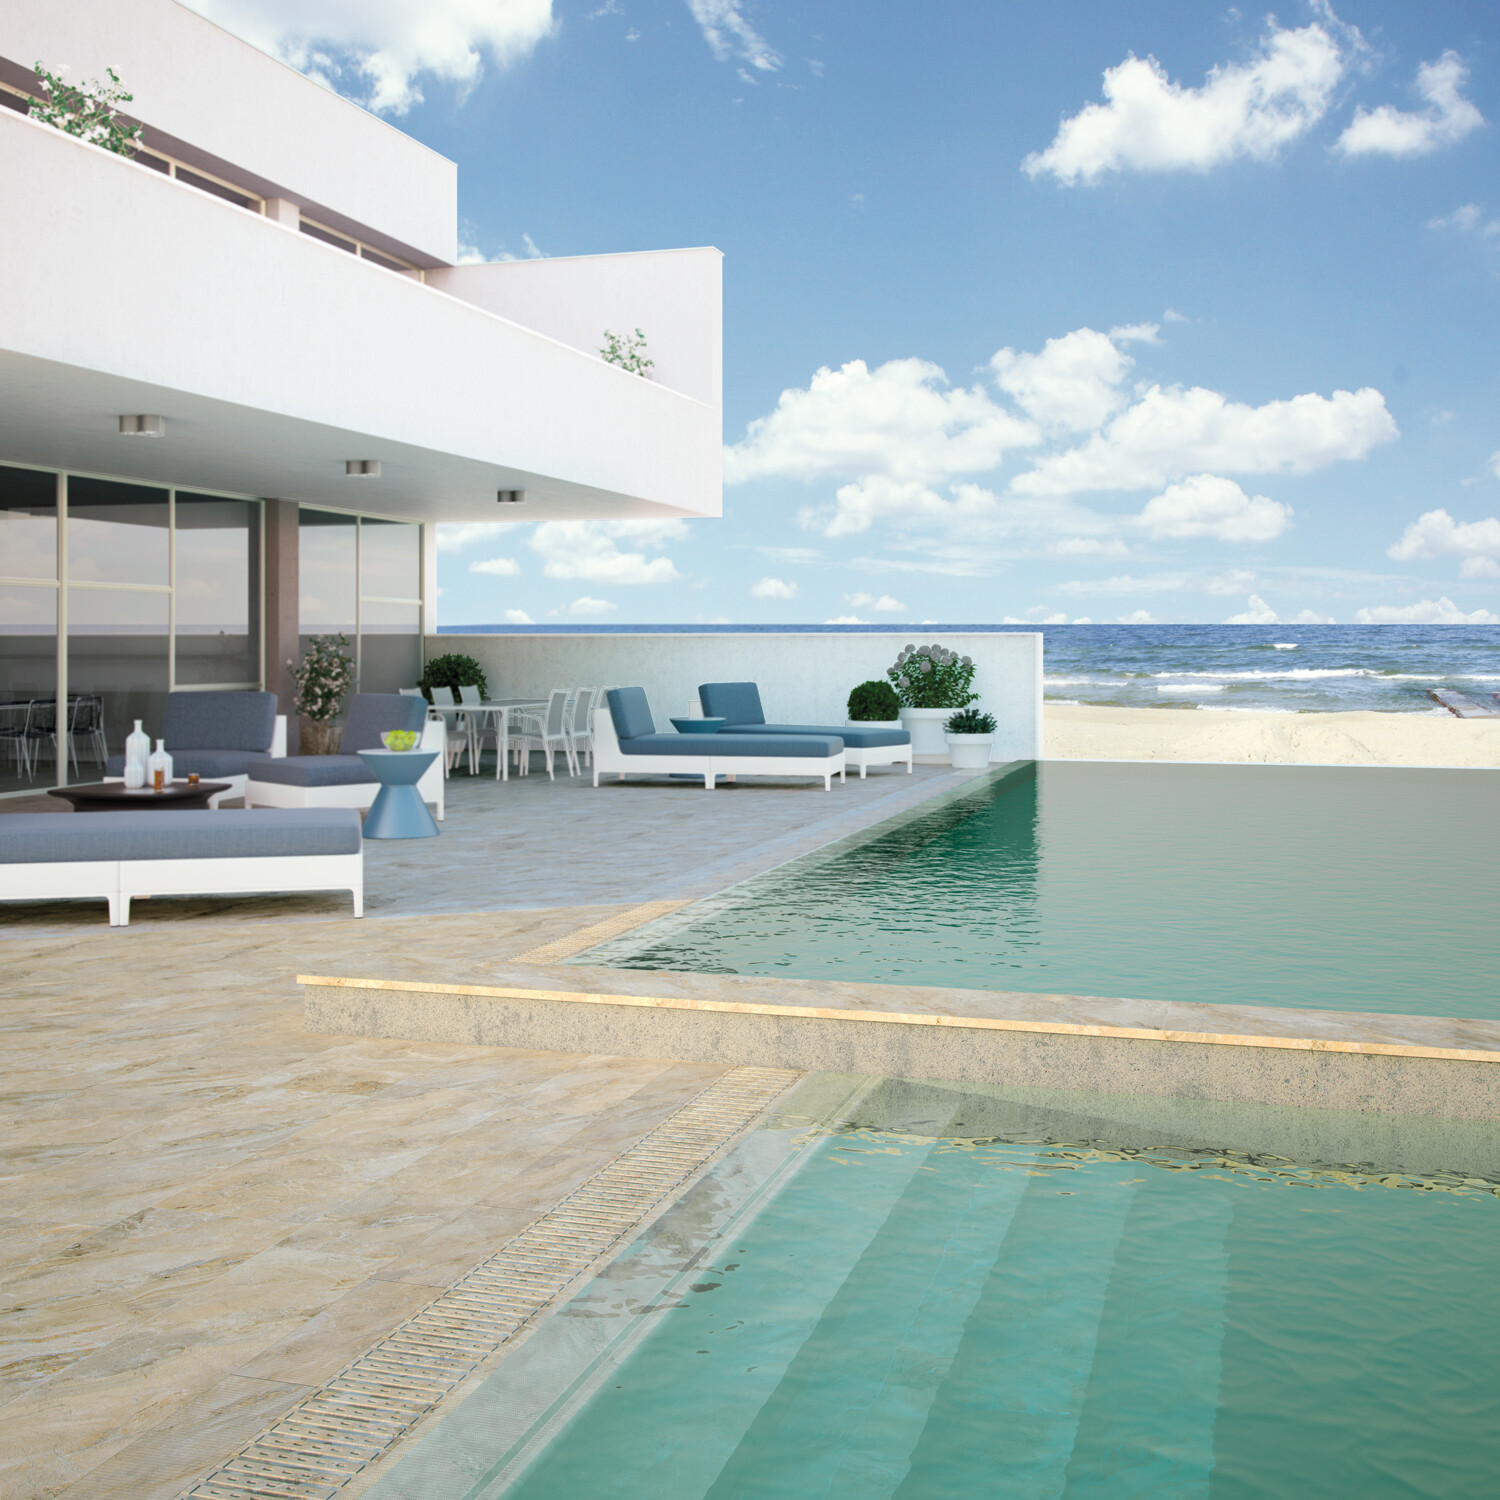 HAWAII COPING POOL SYSTEM